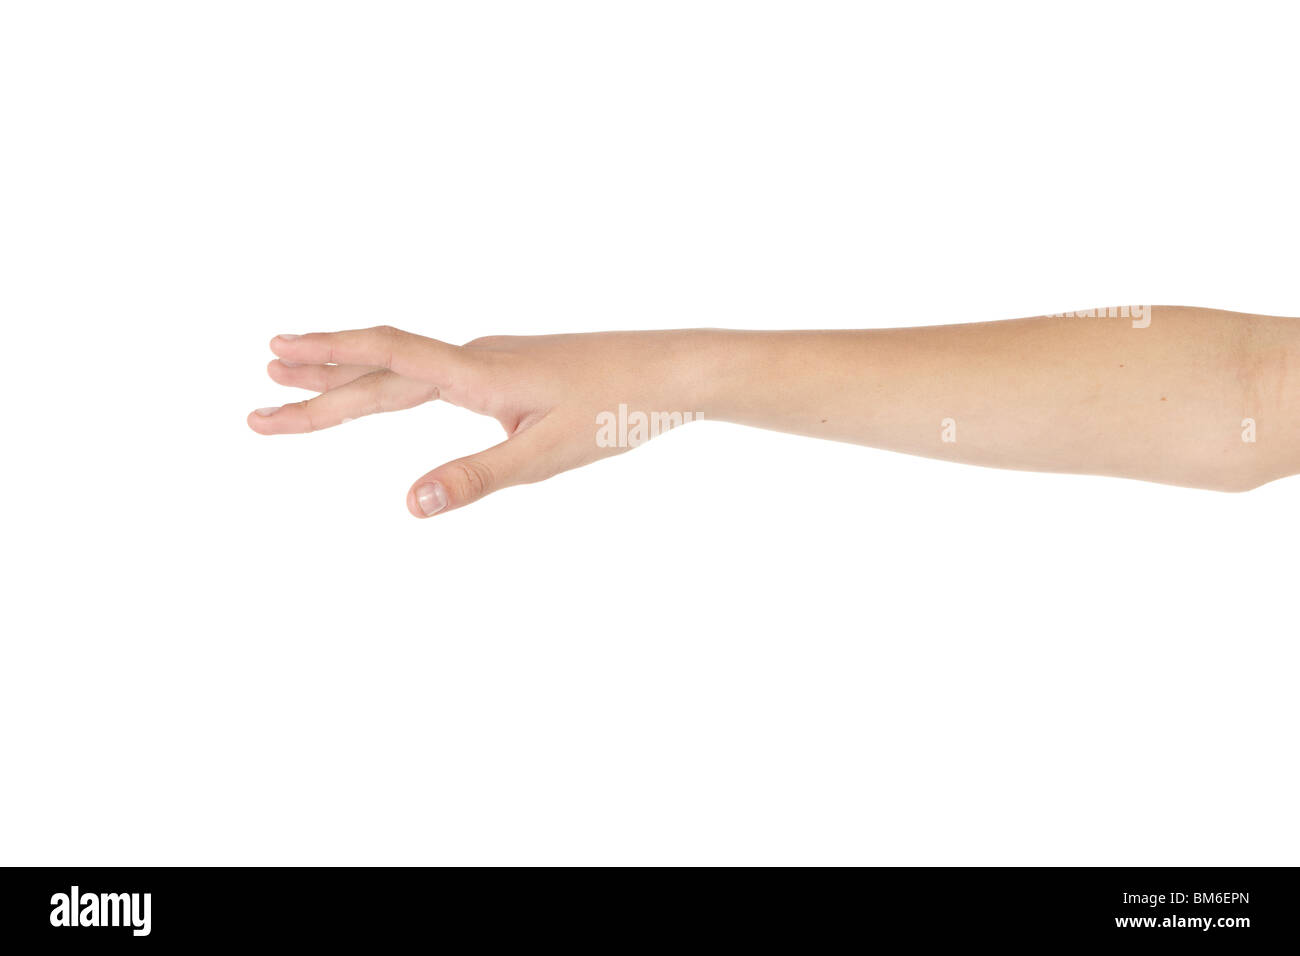 Caucasian belly dancing girl showing arm moves on white background. Not isolated - Stock Image